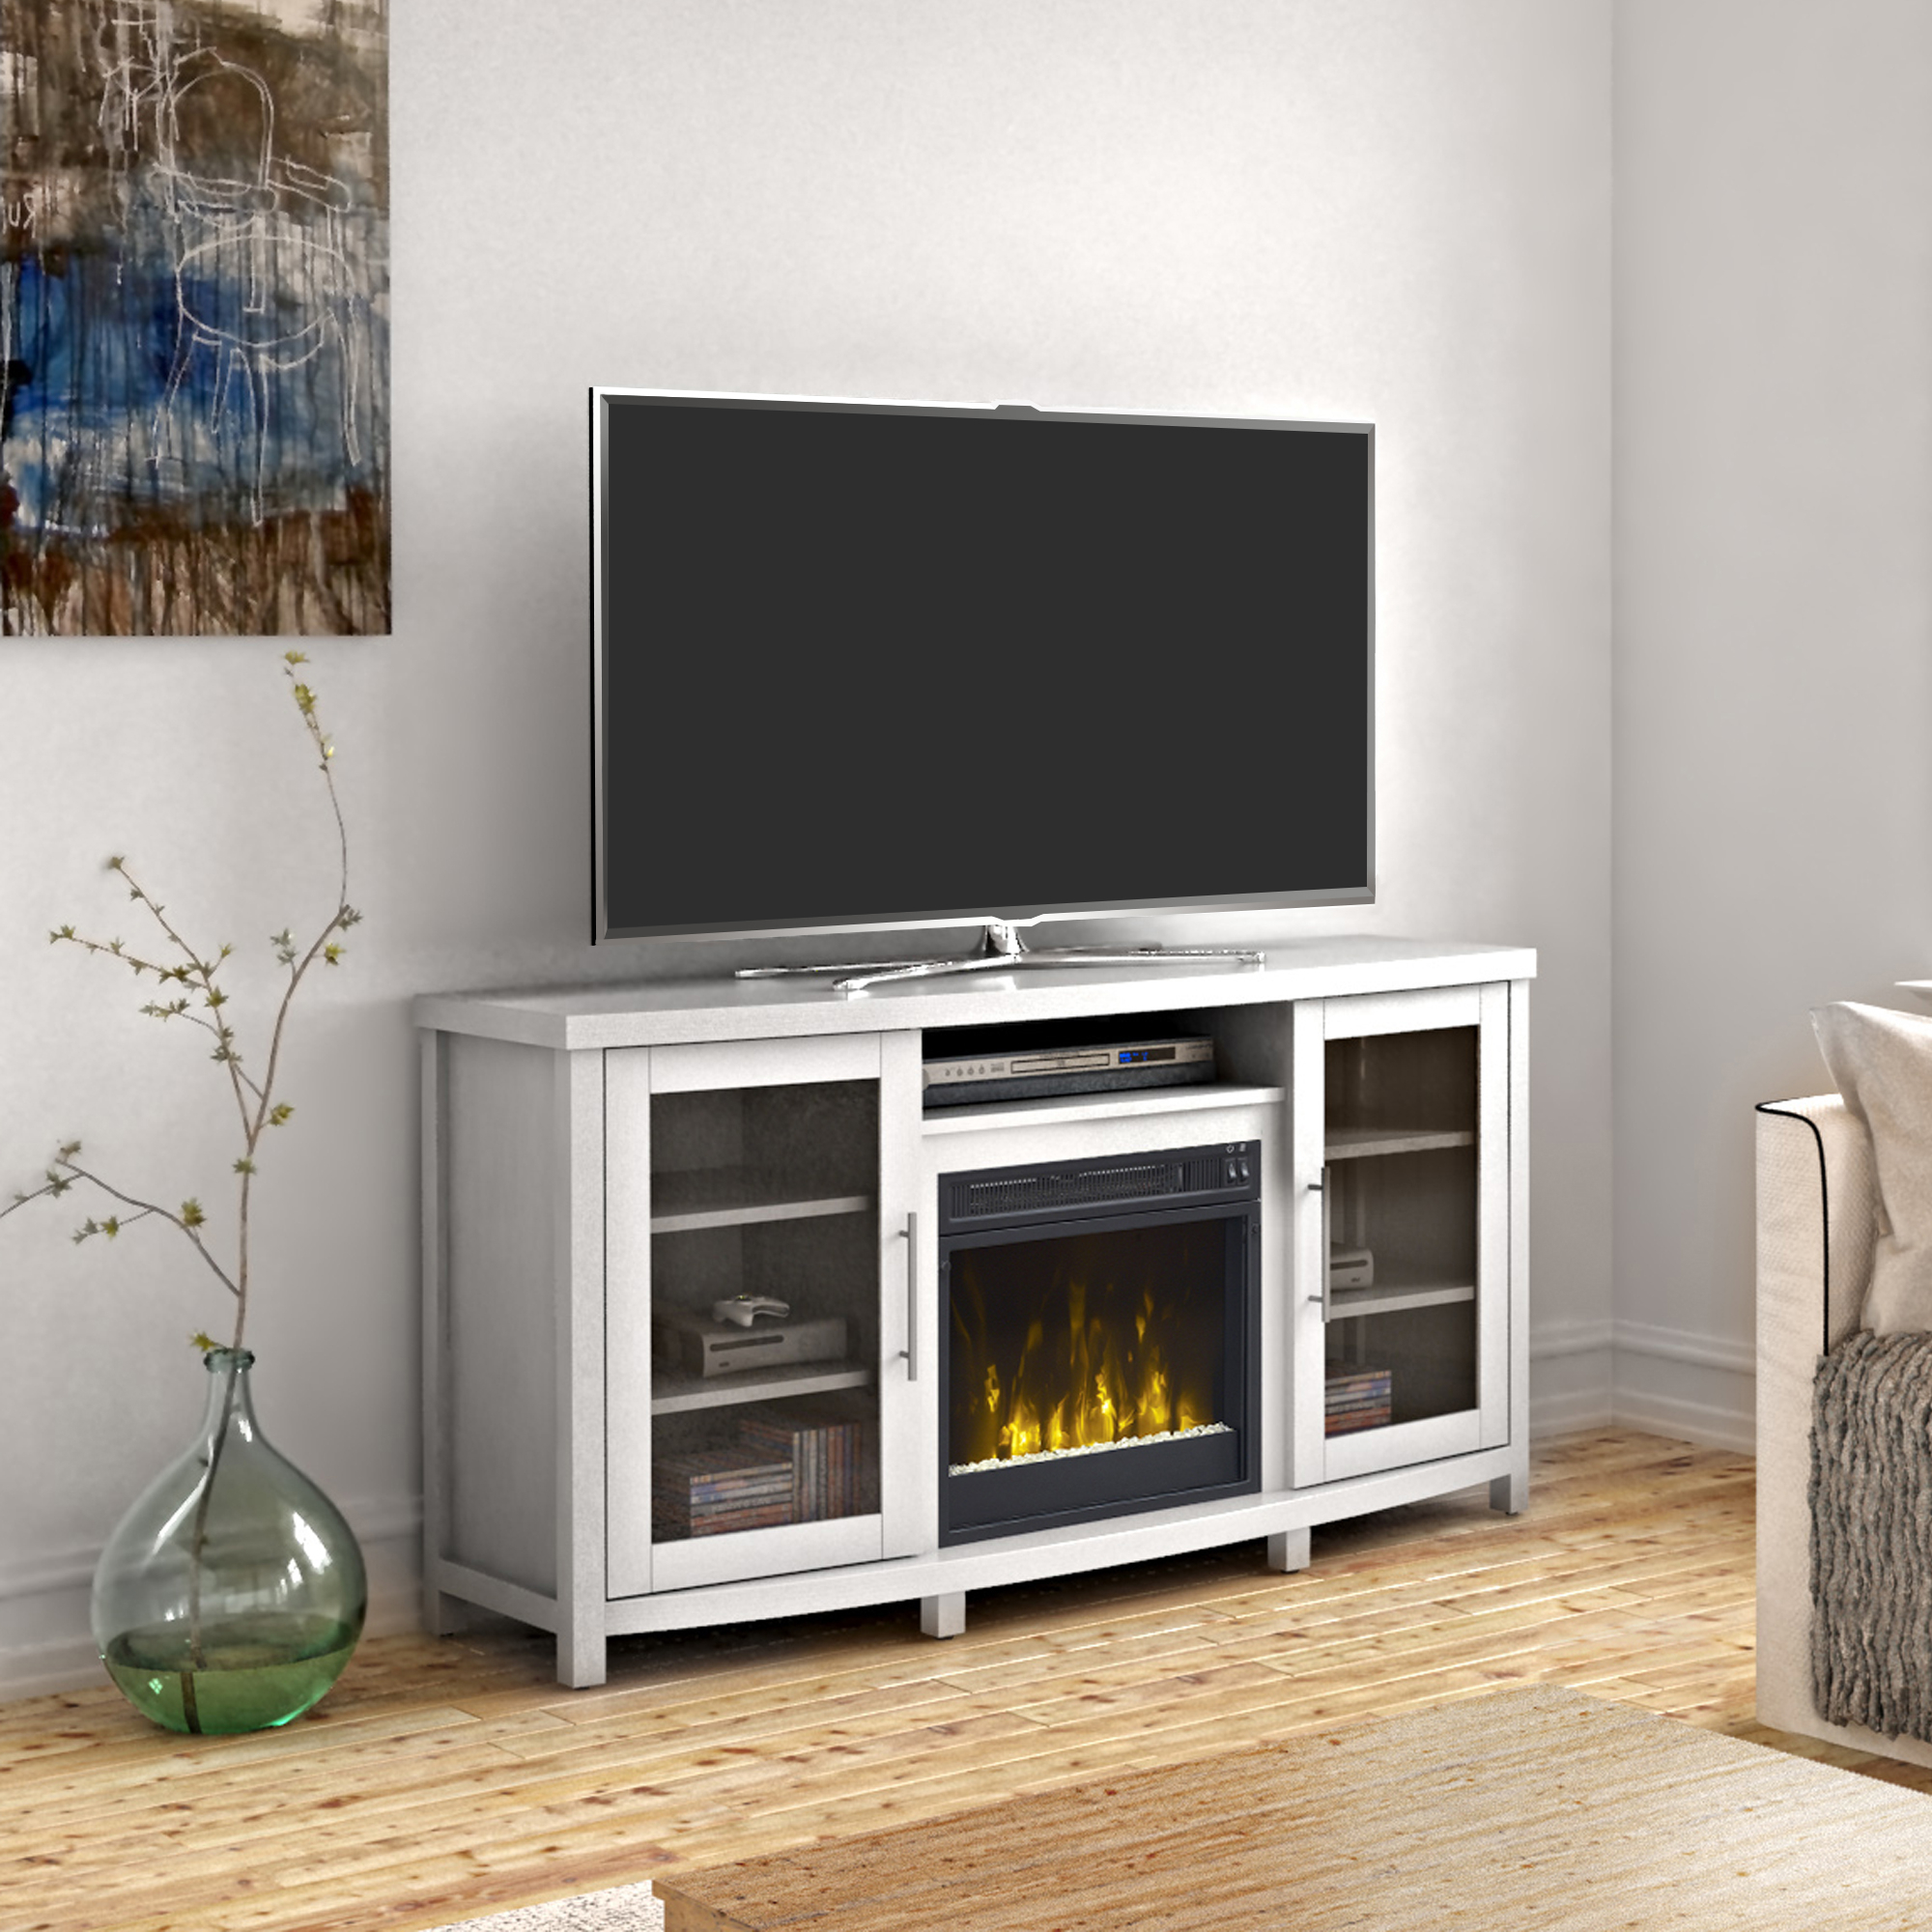 """Evelynn Tv Stands For Tvs Up To 60"""" In Trendy Sea Meadow White Tv Stand For Tvs Up To 60"""" With Electric (View 20 of 25)"""